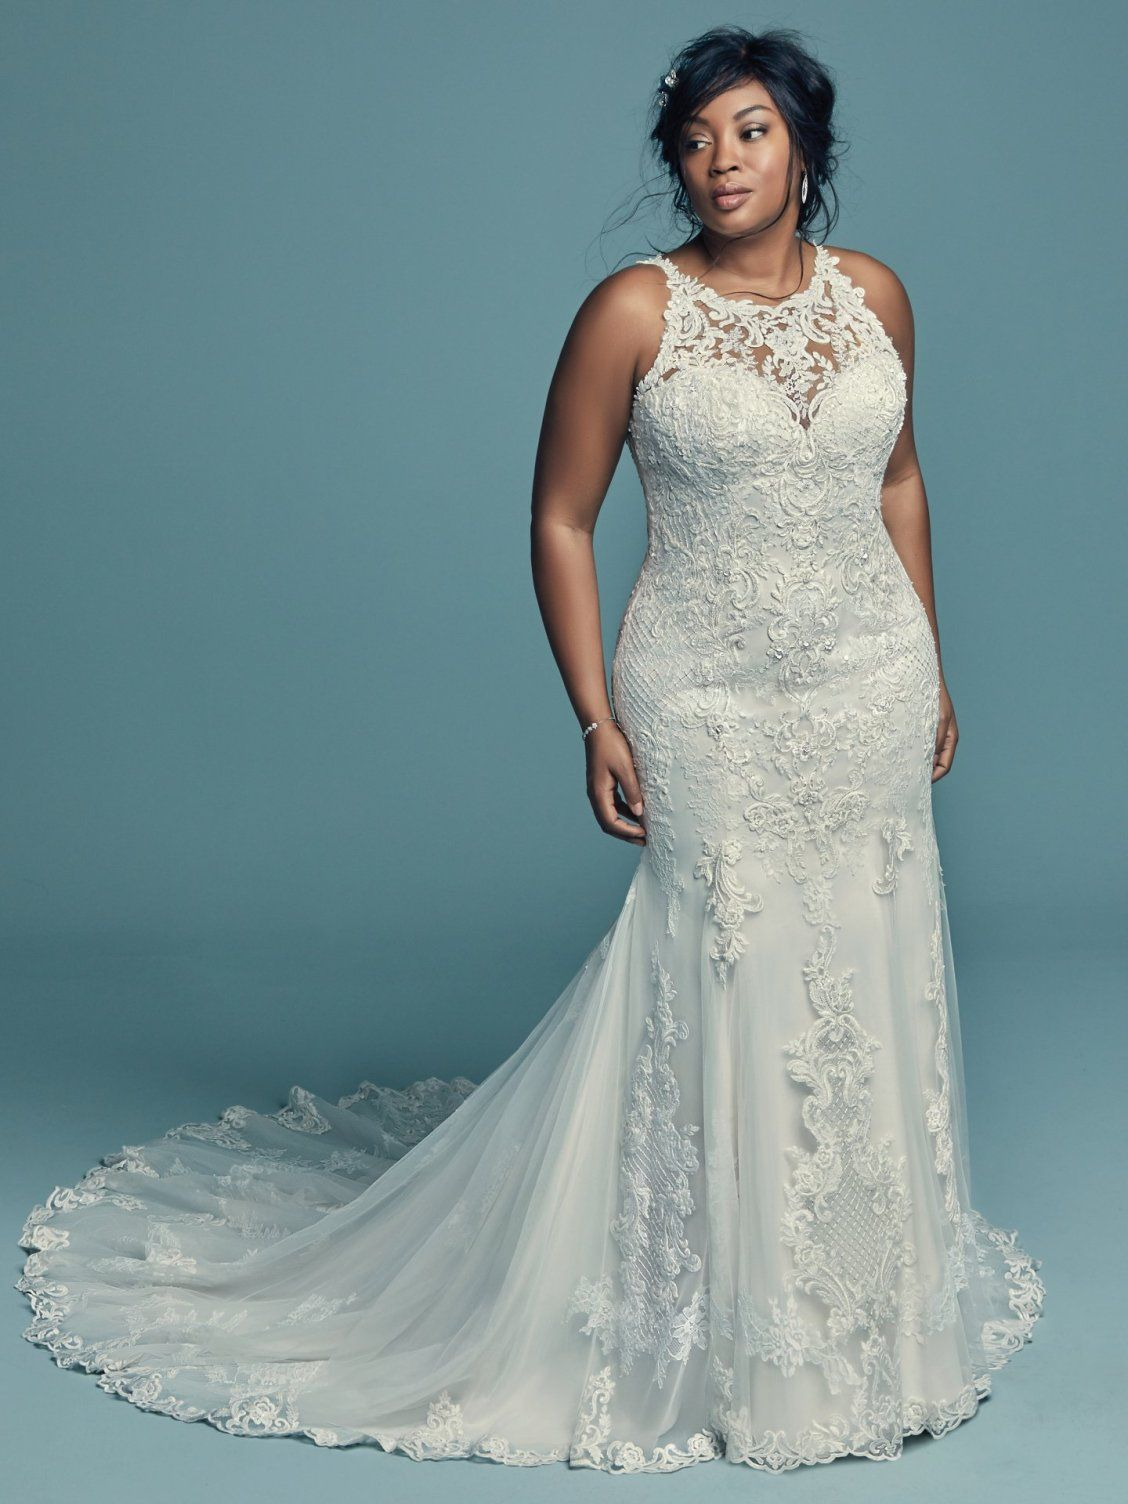 c34bc5365840b Maggie Sottero - KENDALL LYNETTE, This classic yet striking wedding gown  offers additional coverage to our Kendall style. Fit-and-flare silhouette  features ...